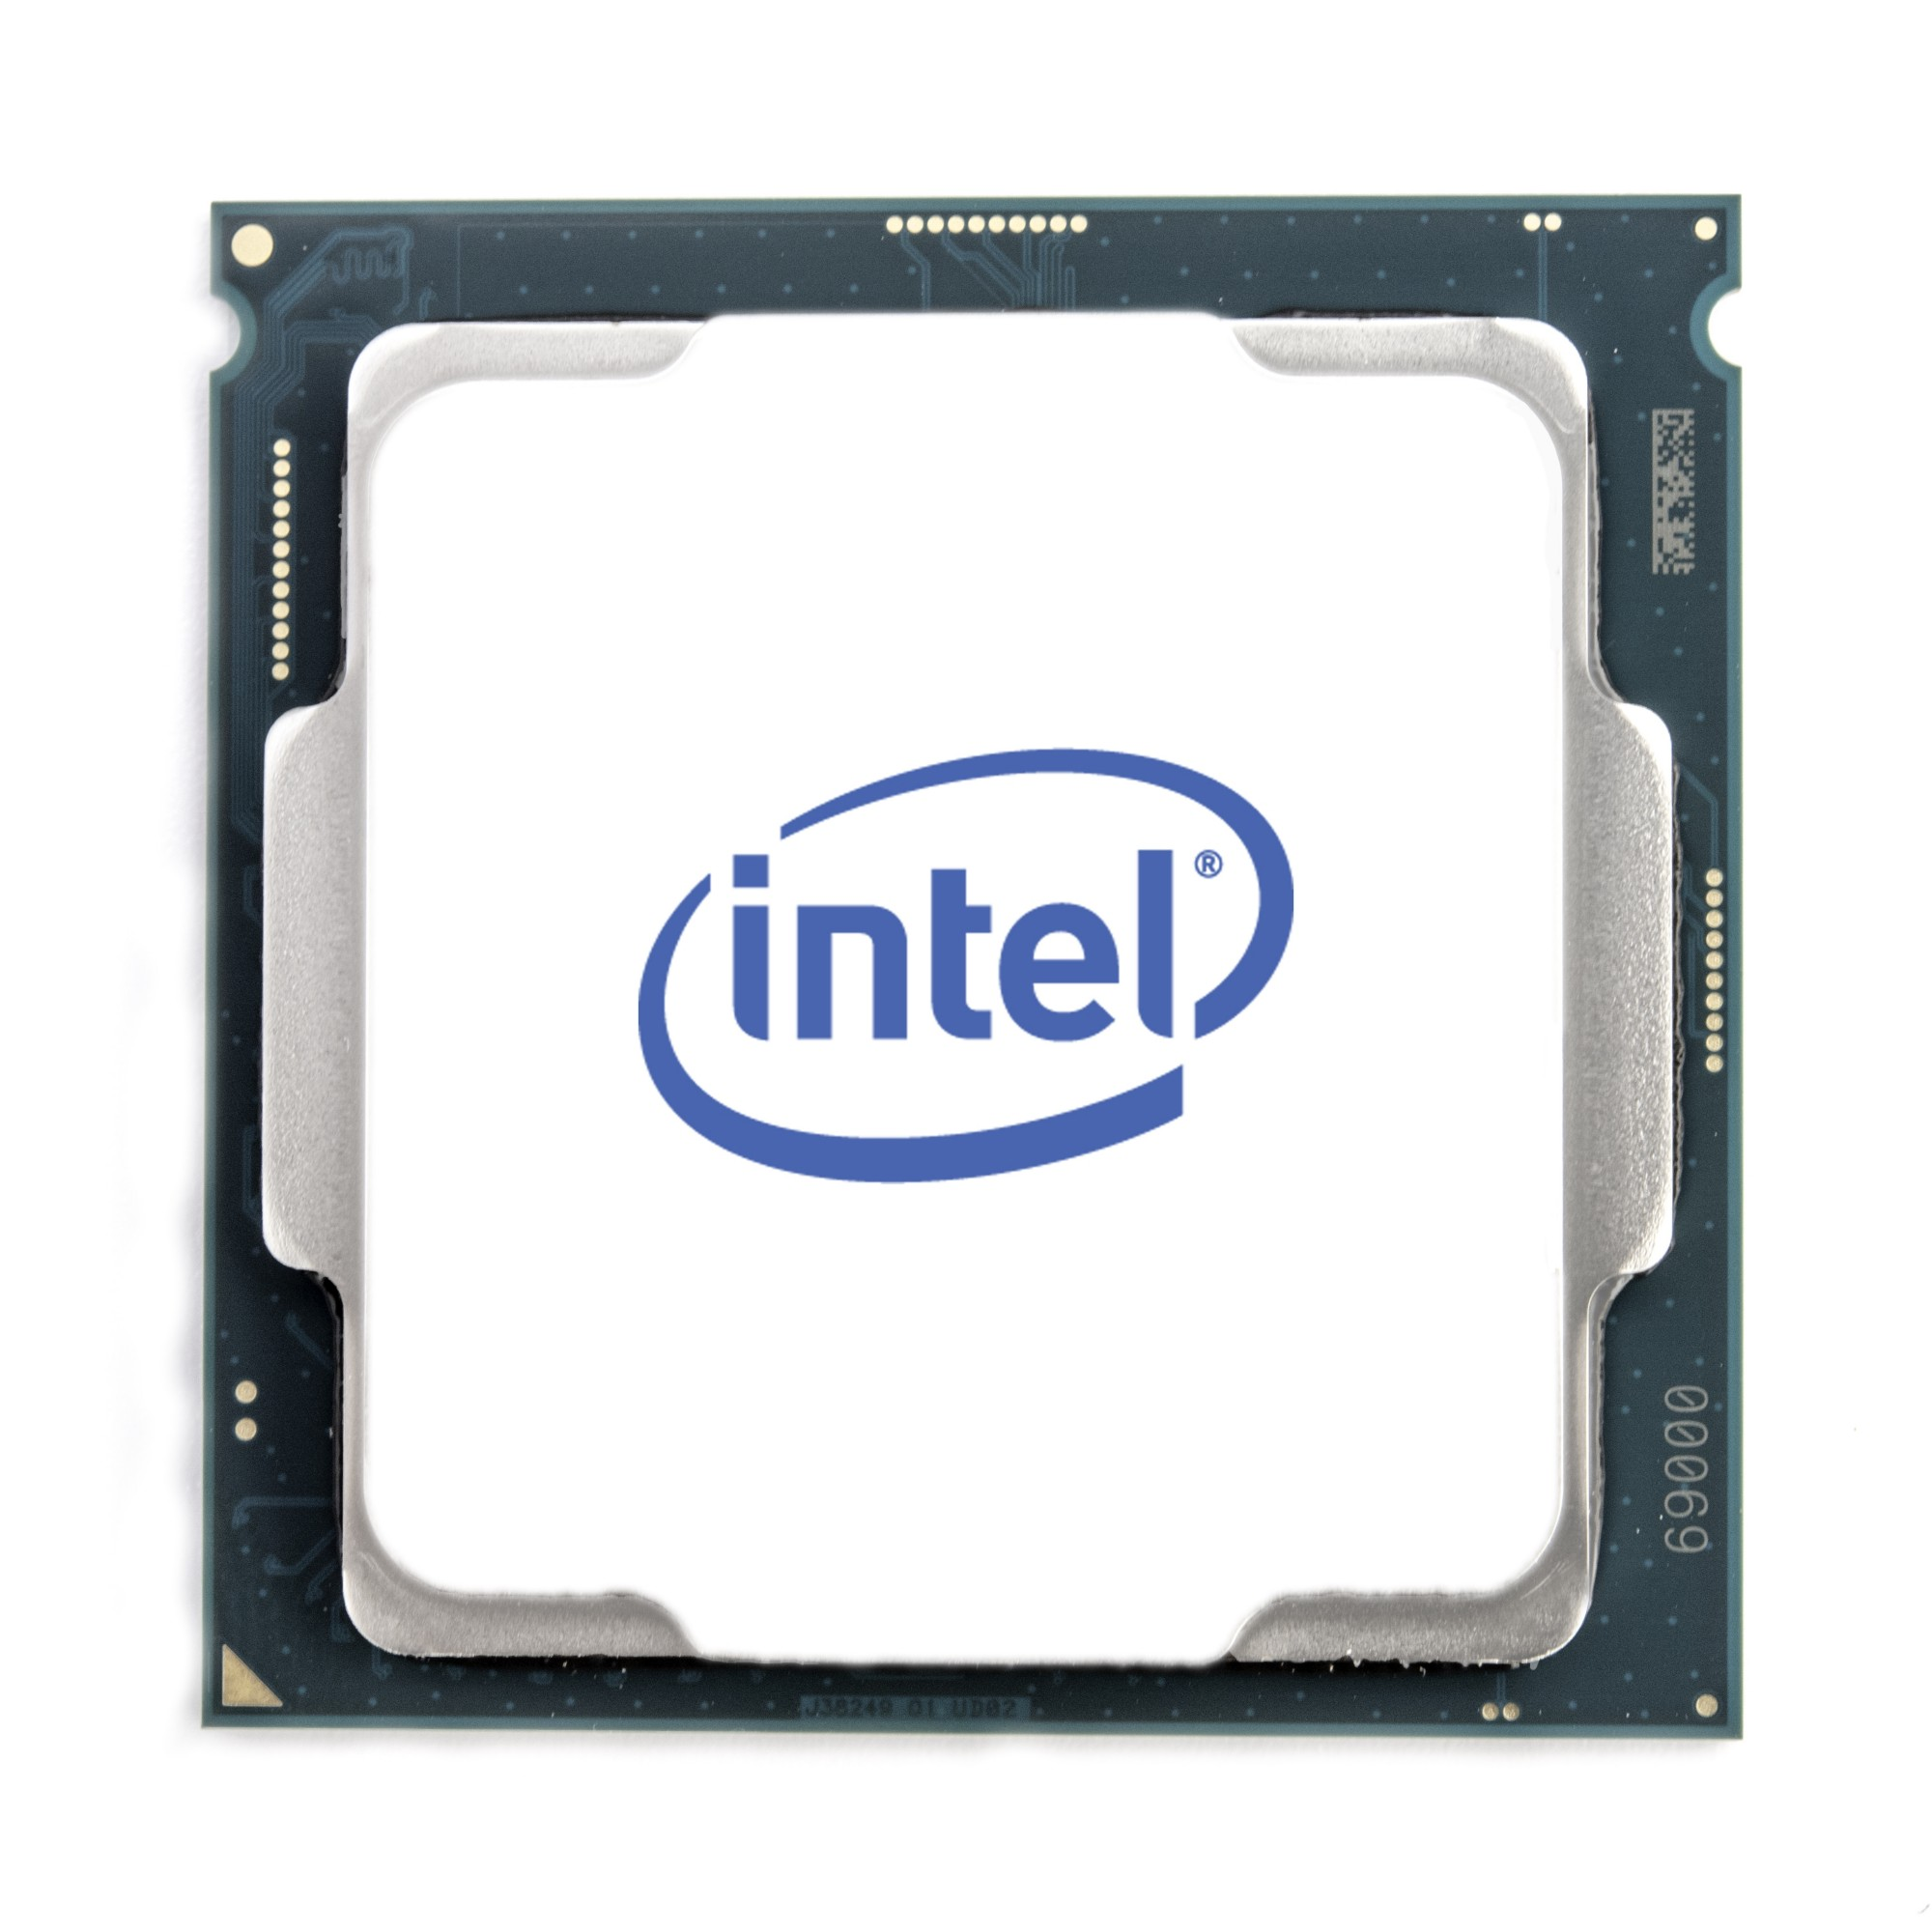 Intel Core i7-9700 processor 3 GHz 12 MB Smart Cache